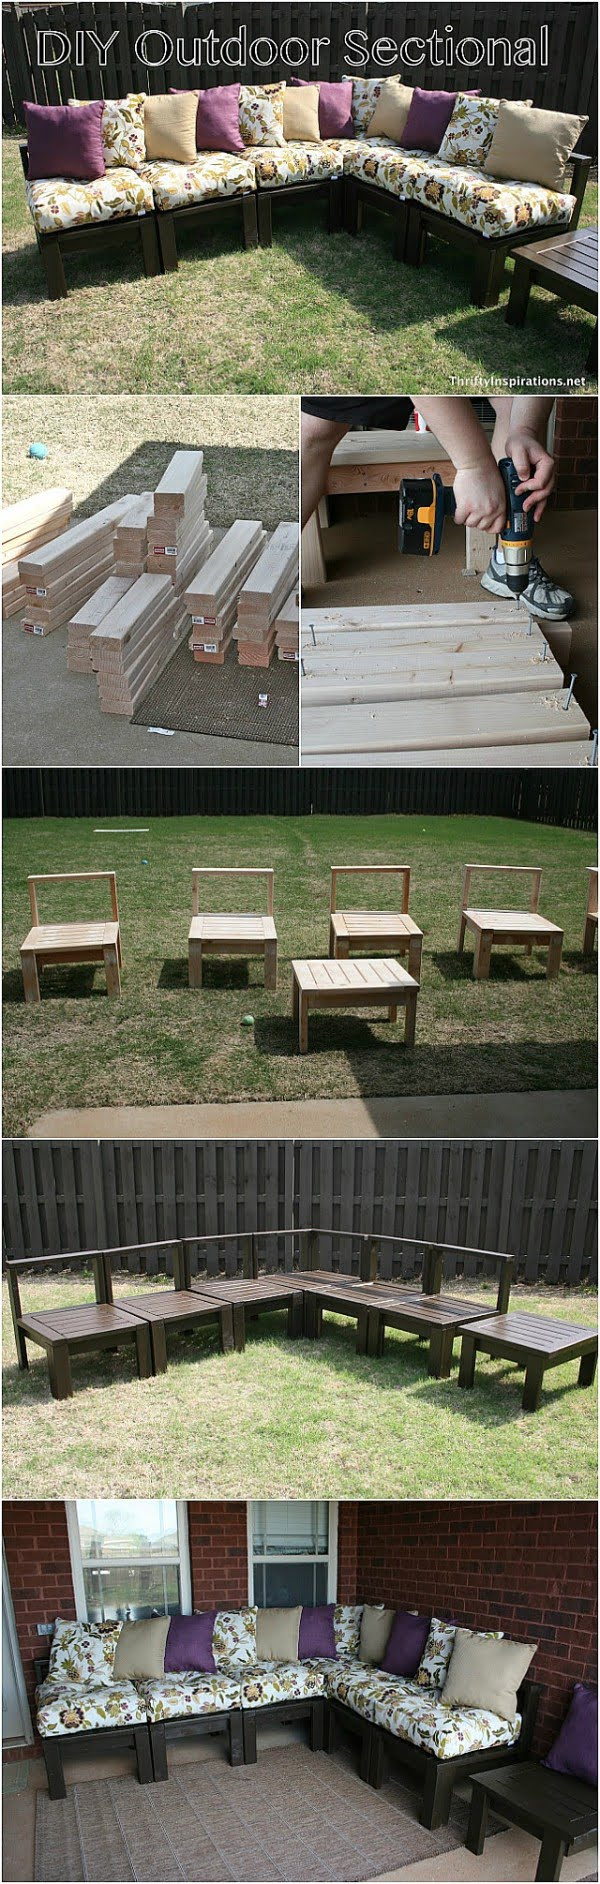 Check out how to build this DIY outdoor sectional